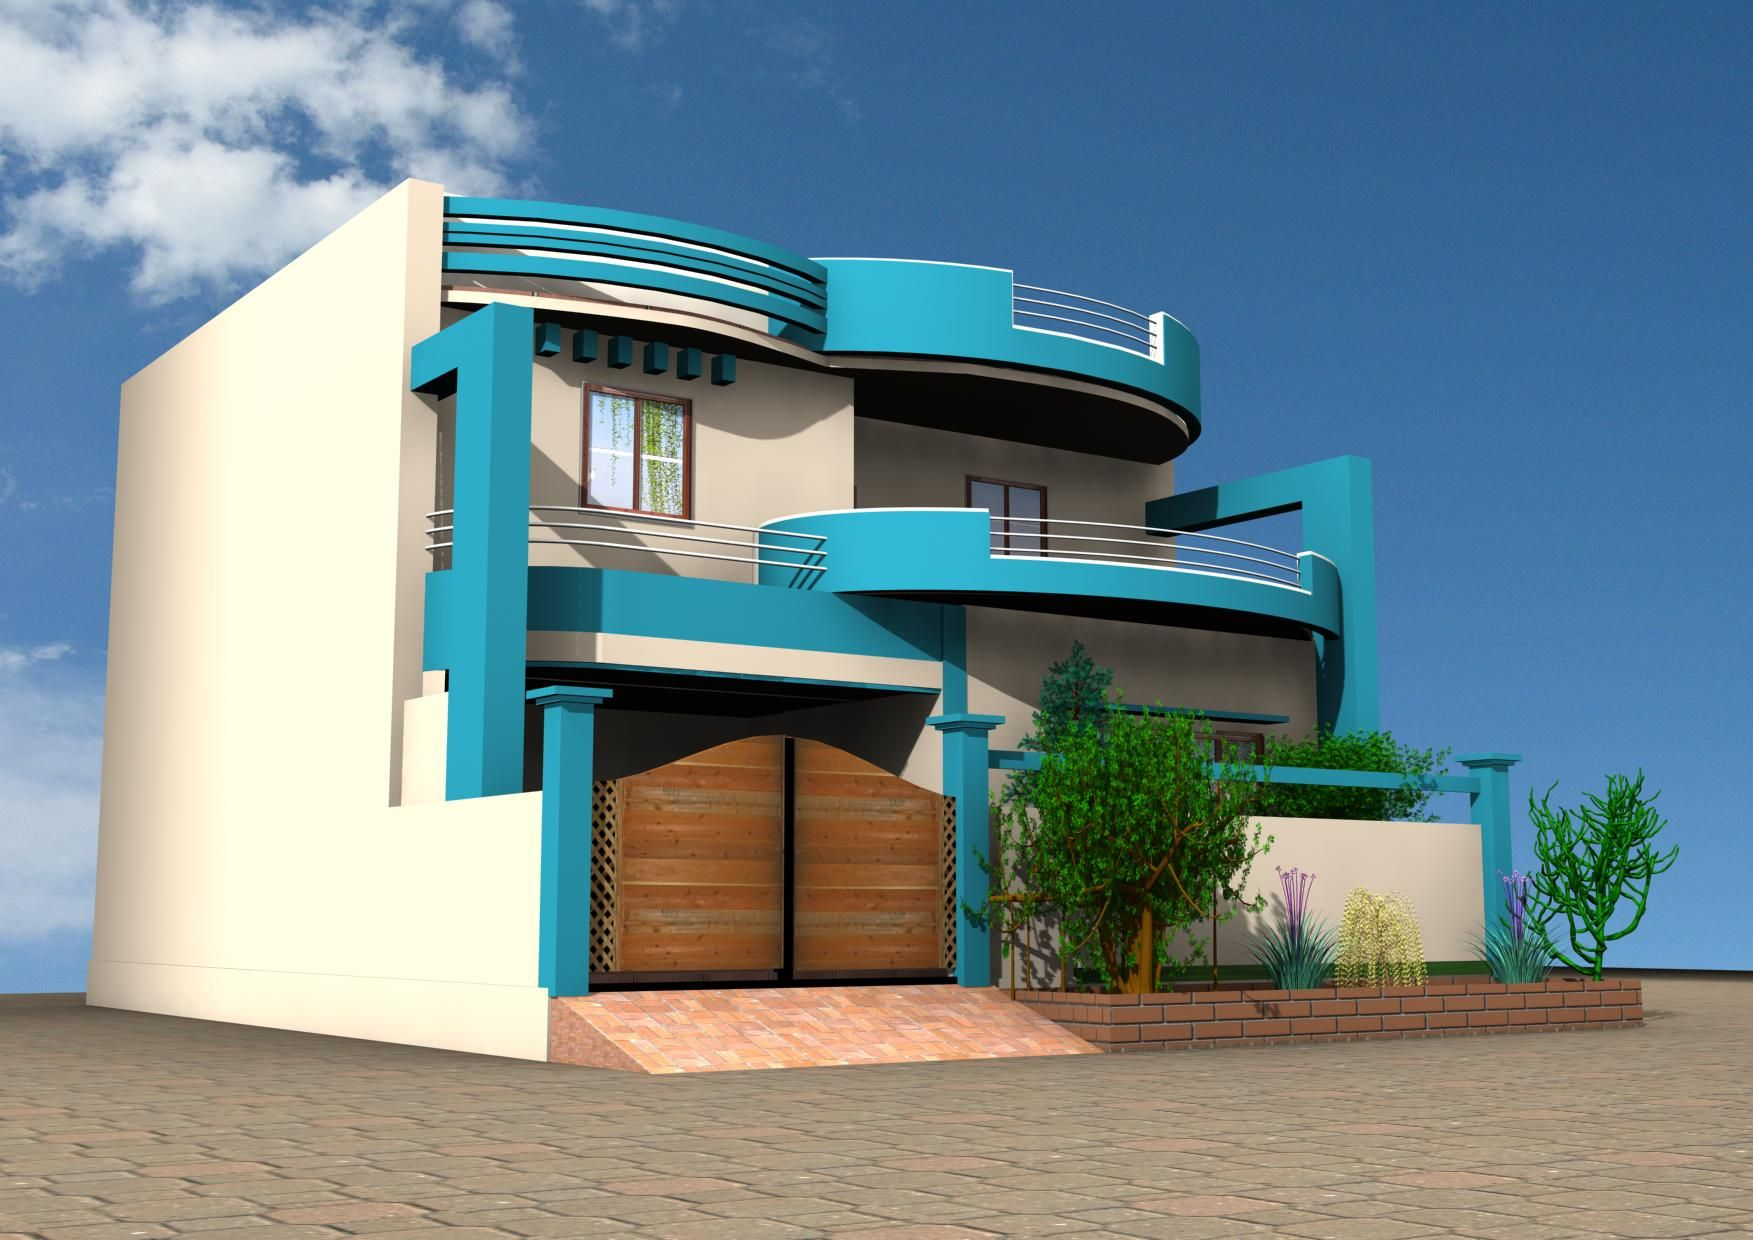 3d home design images hd 1080p for Exterior design software online